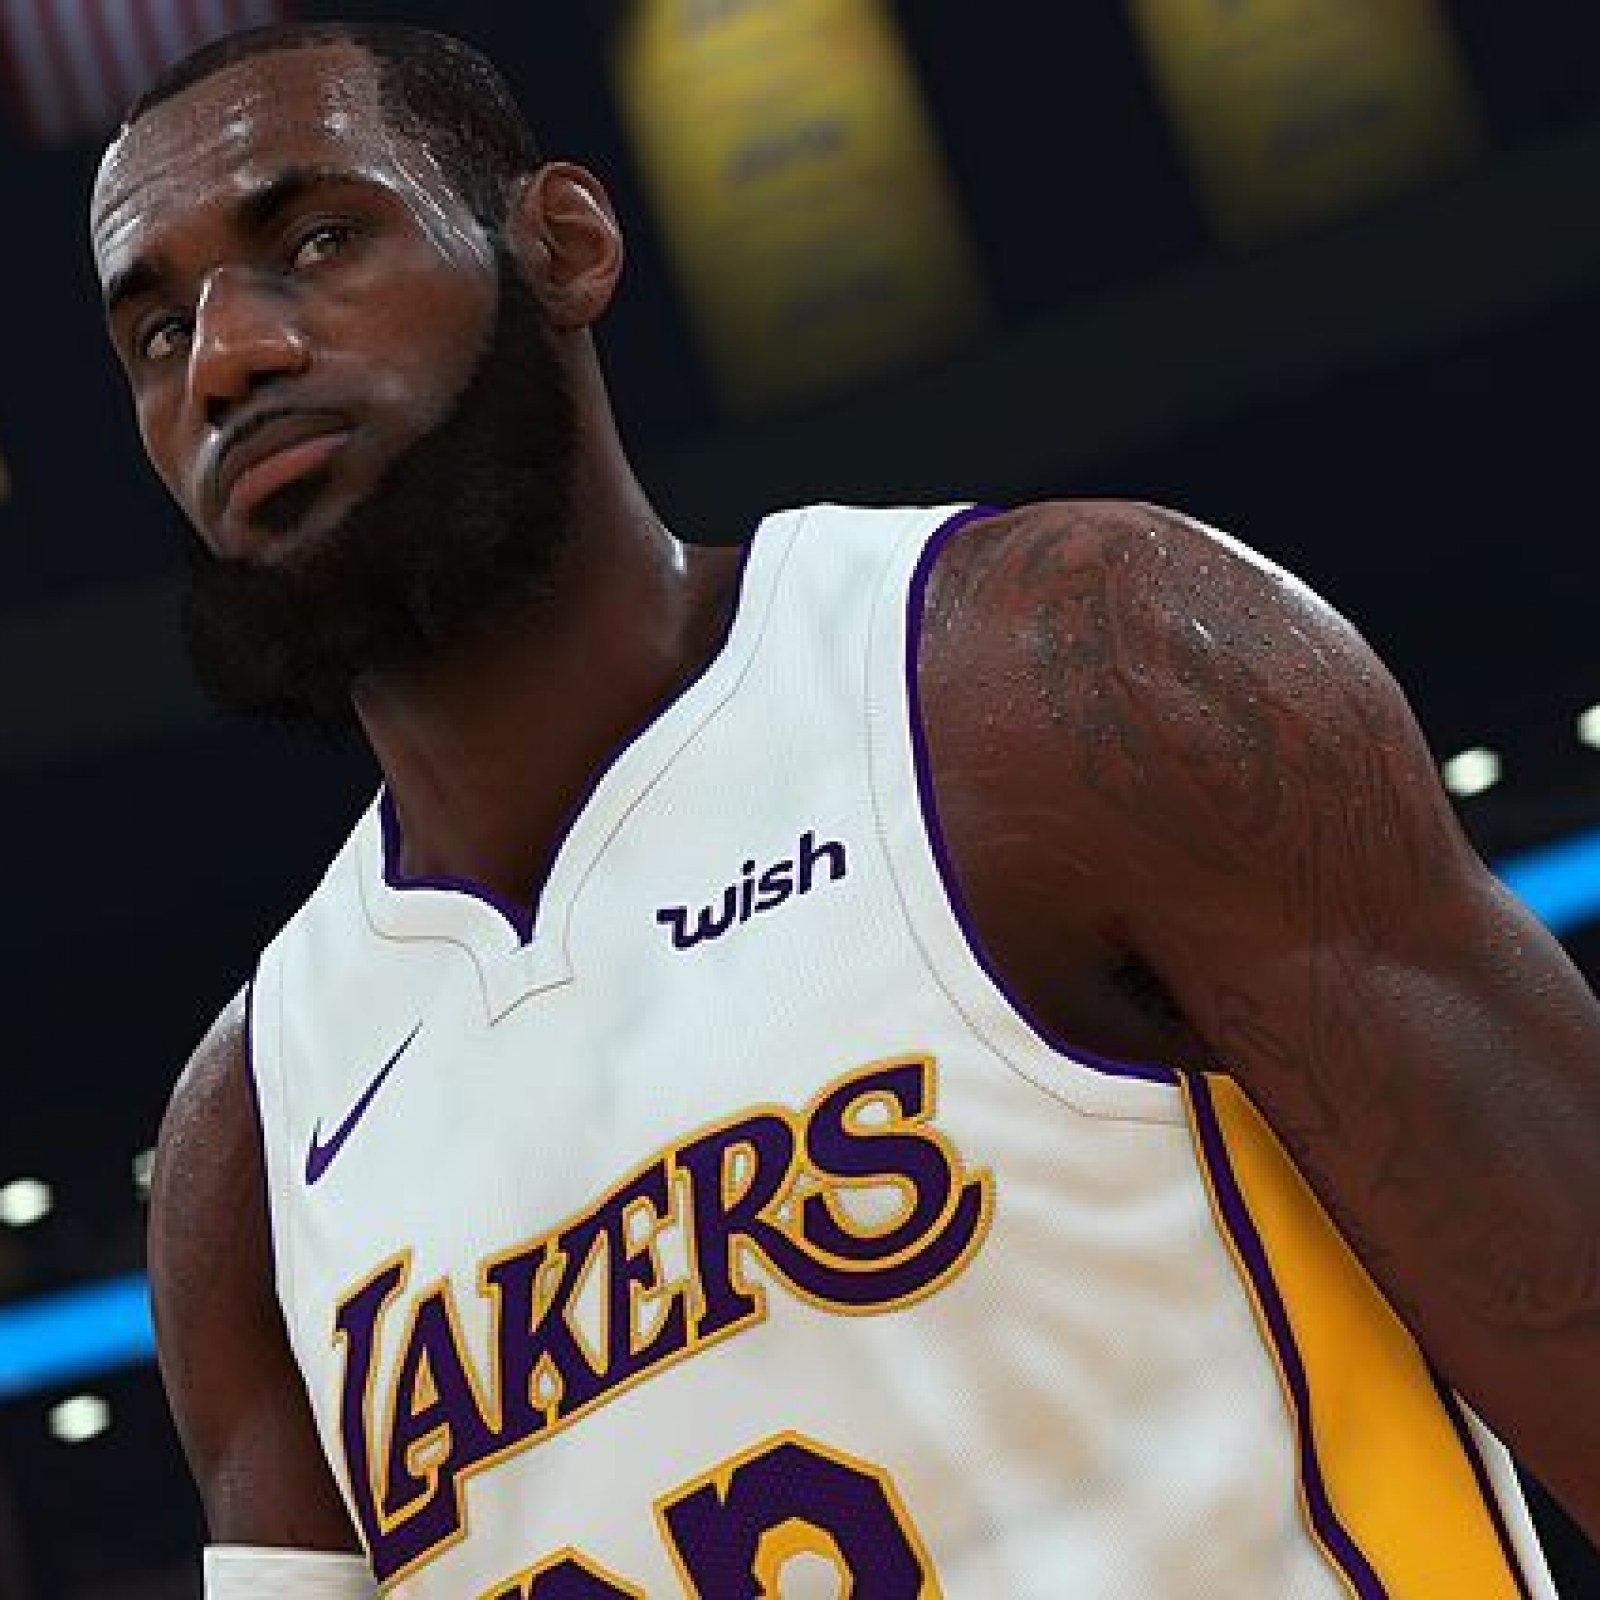 2K Servers Down, Not Working? NBA 2K, WWE 2K19 Online Not Available